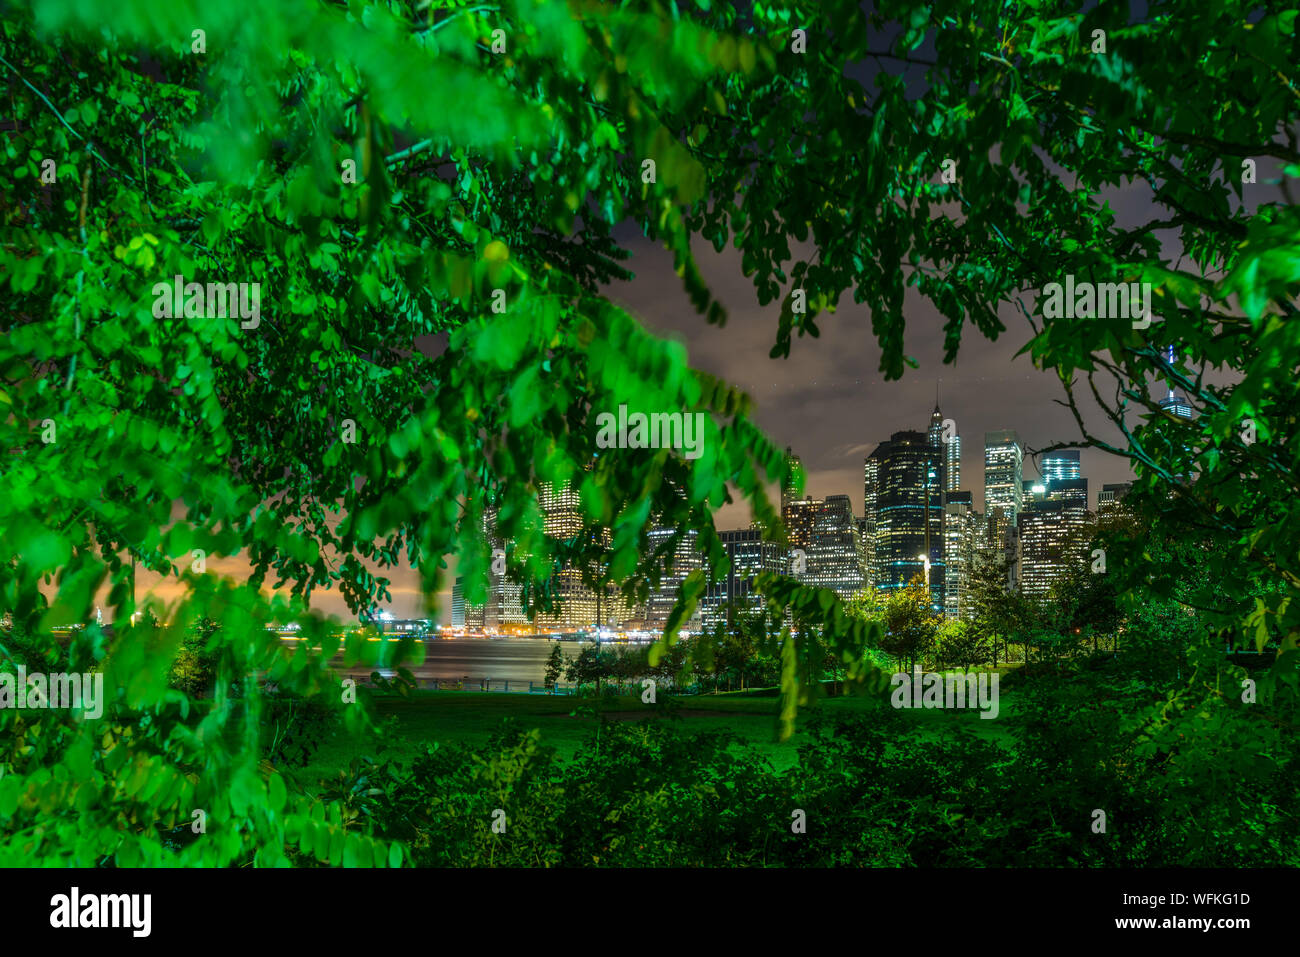 Trees Against Illuminated Buildings In Park At Night Stock Photo